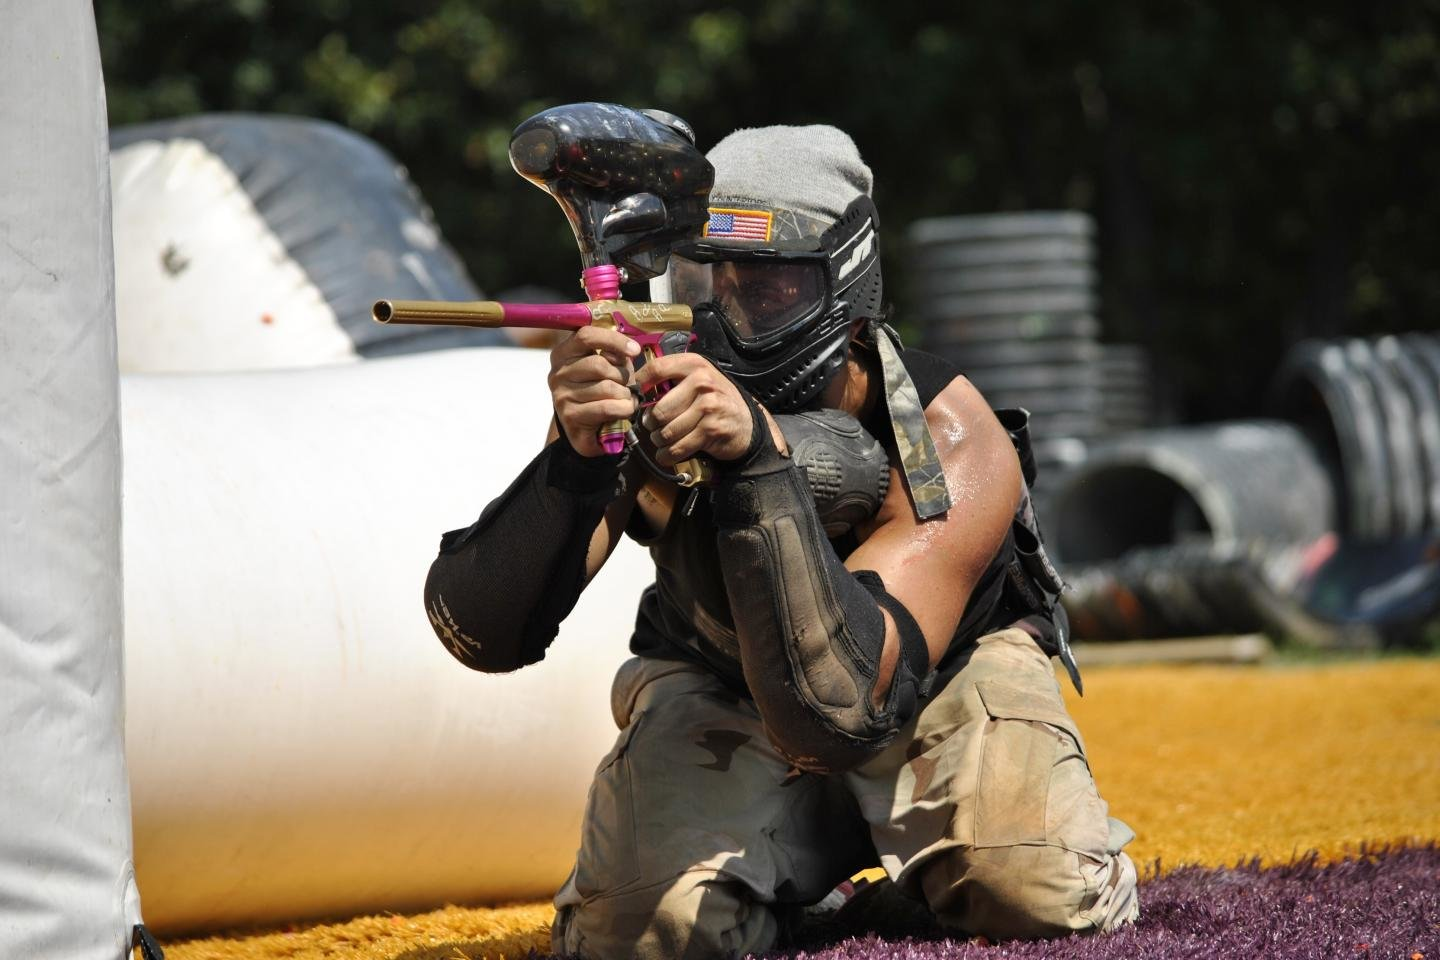 Awesome Paintball free wallpaper ID:170868 for hd 1440x960 desktop